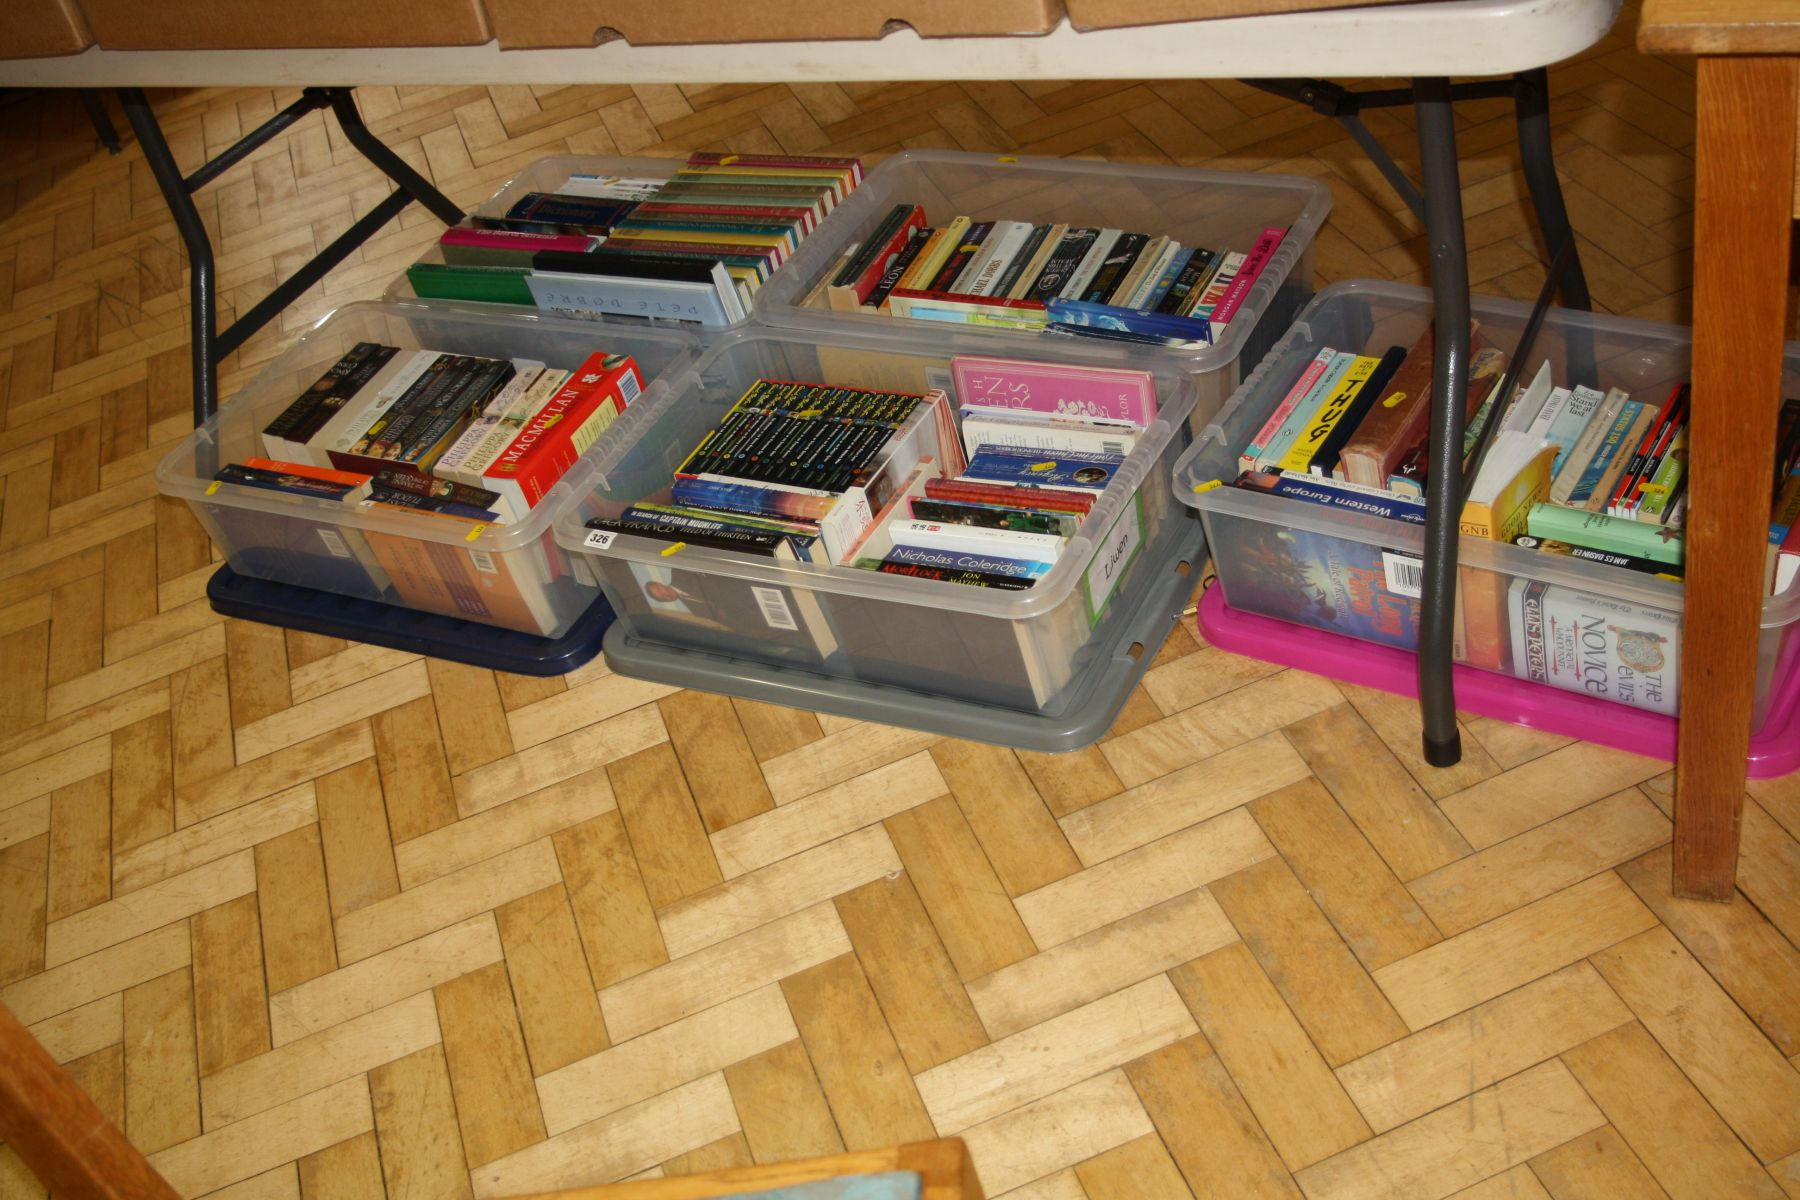 Lot 326 - FIVE PLASTIC BOXES ON FICTION AND REFERENCE BOOKS, including Enid Blyton, Philippa Gregory, etc